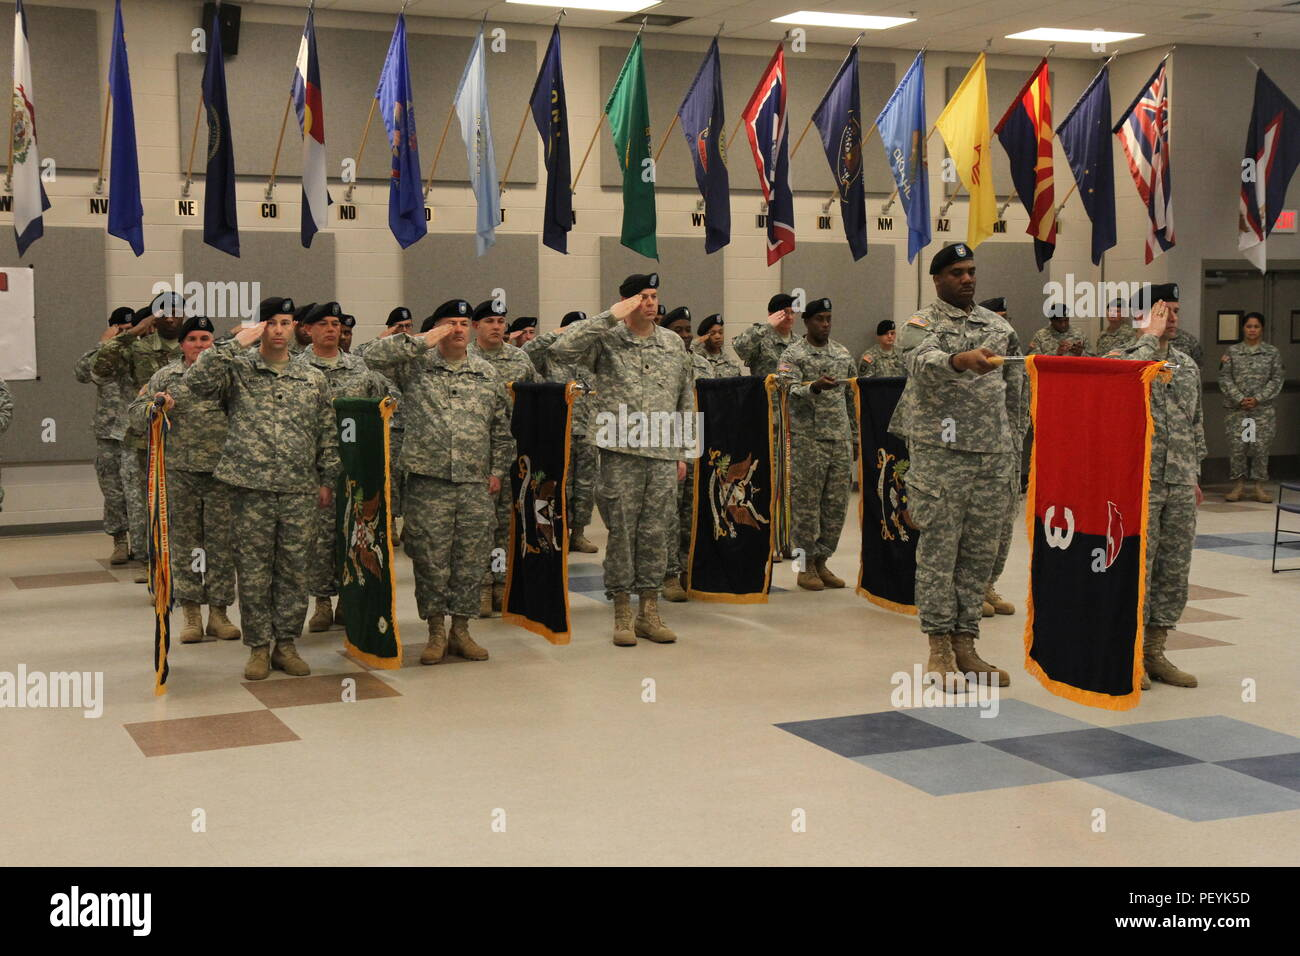 U.S. Army soldiers assigned to the 78th Training Divison stand in formation as Brig. Gen. Michael Dillard's assumes command at Joint Base McGuire-Dix-Lakehurst on Feb. 20, 2016. - Stock Image